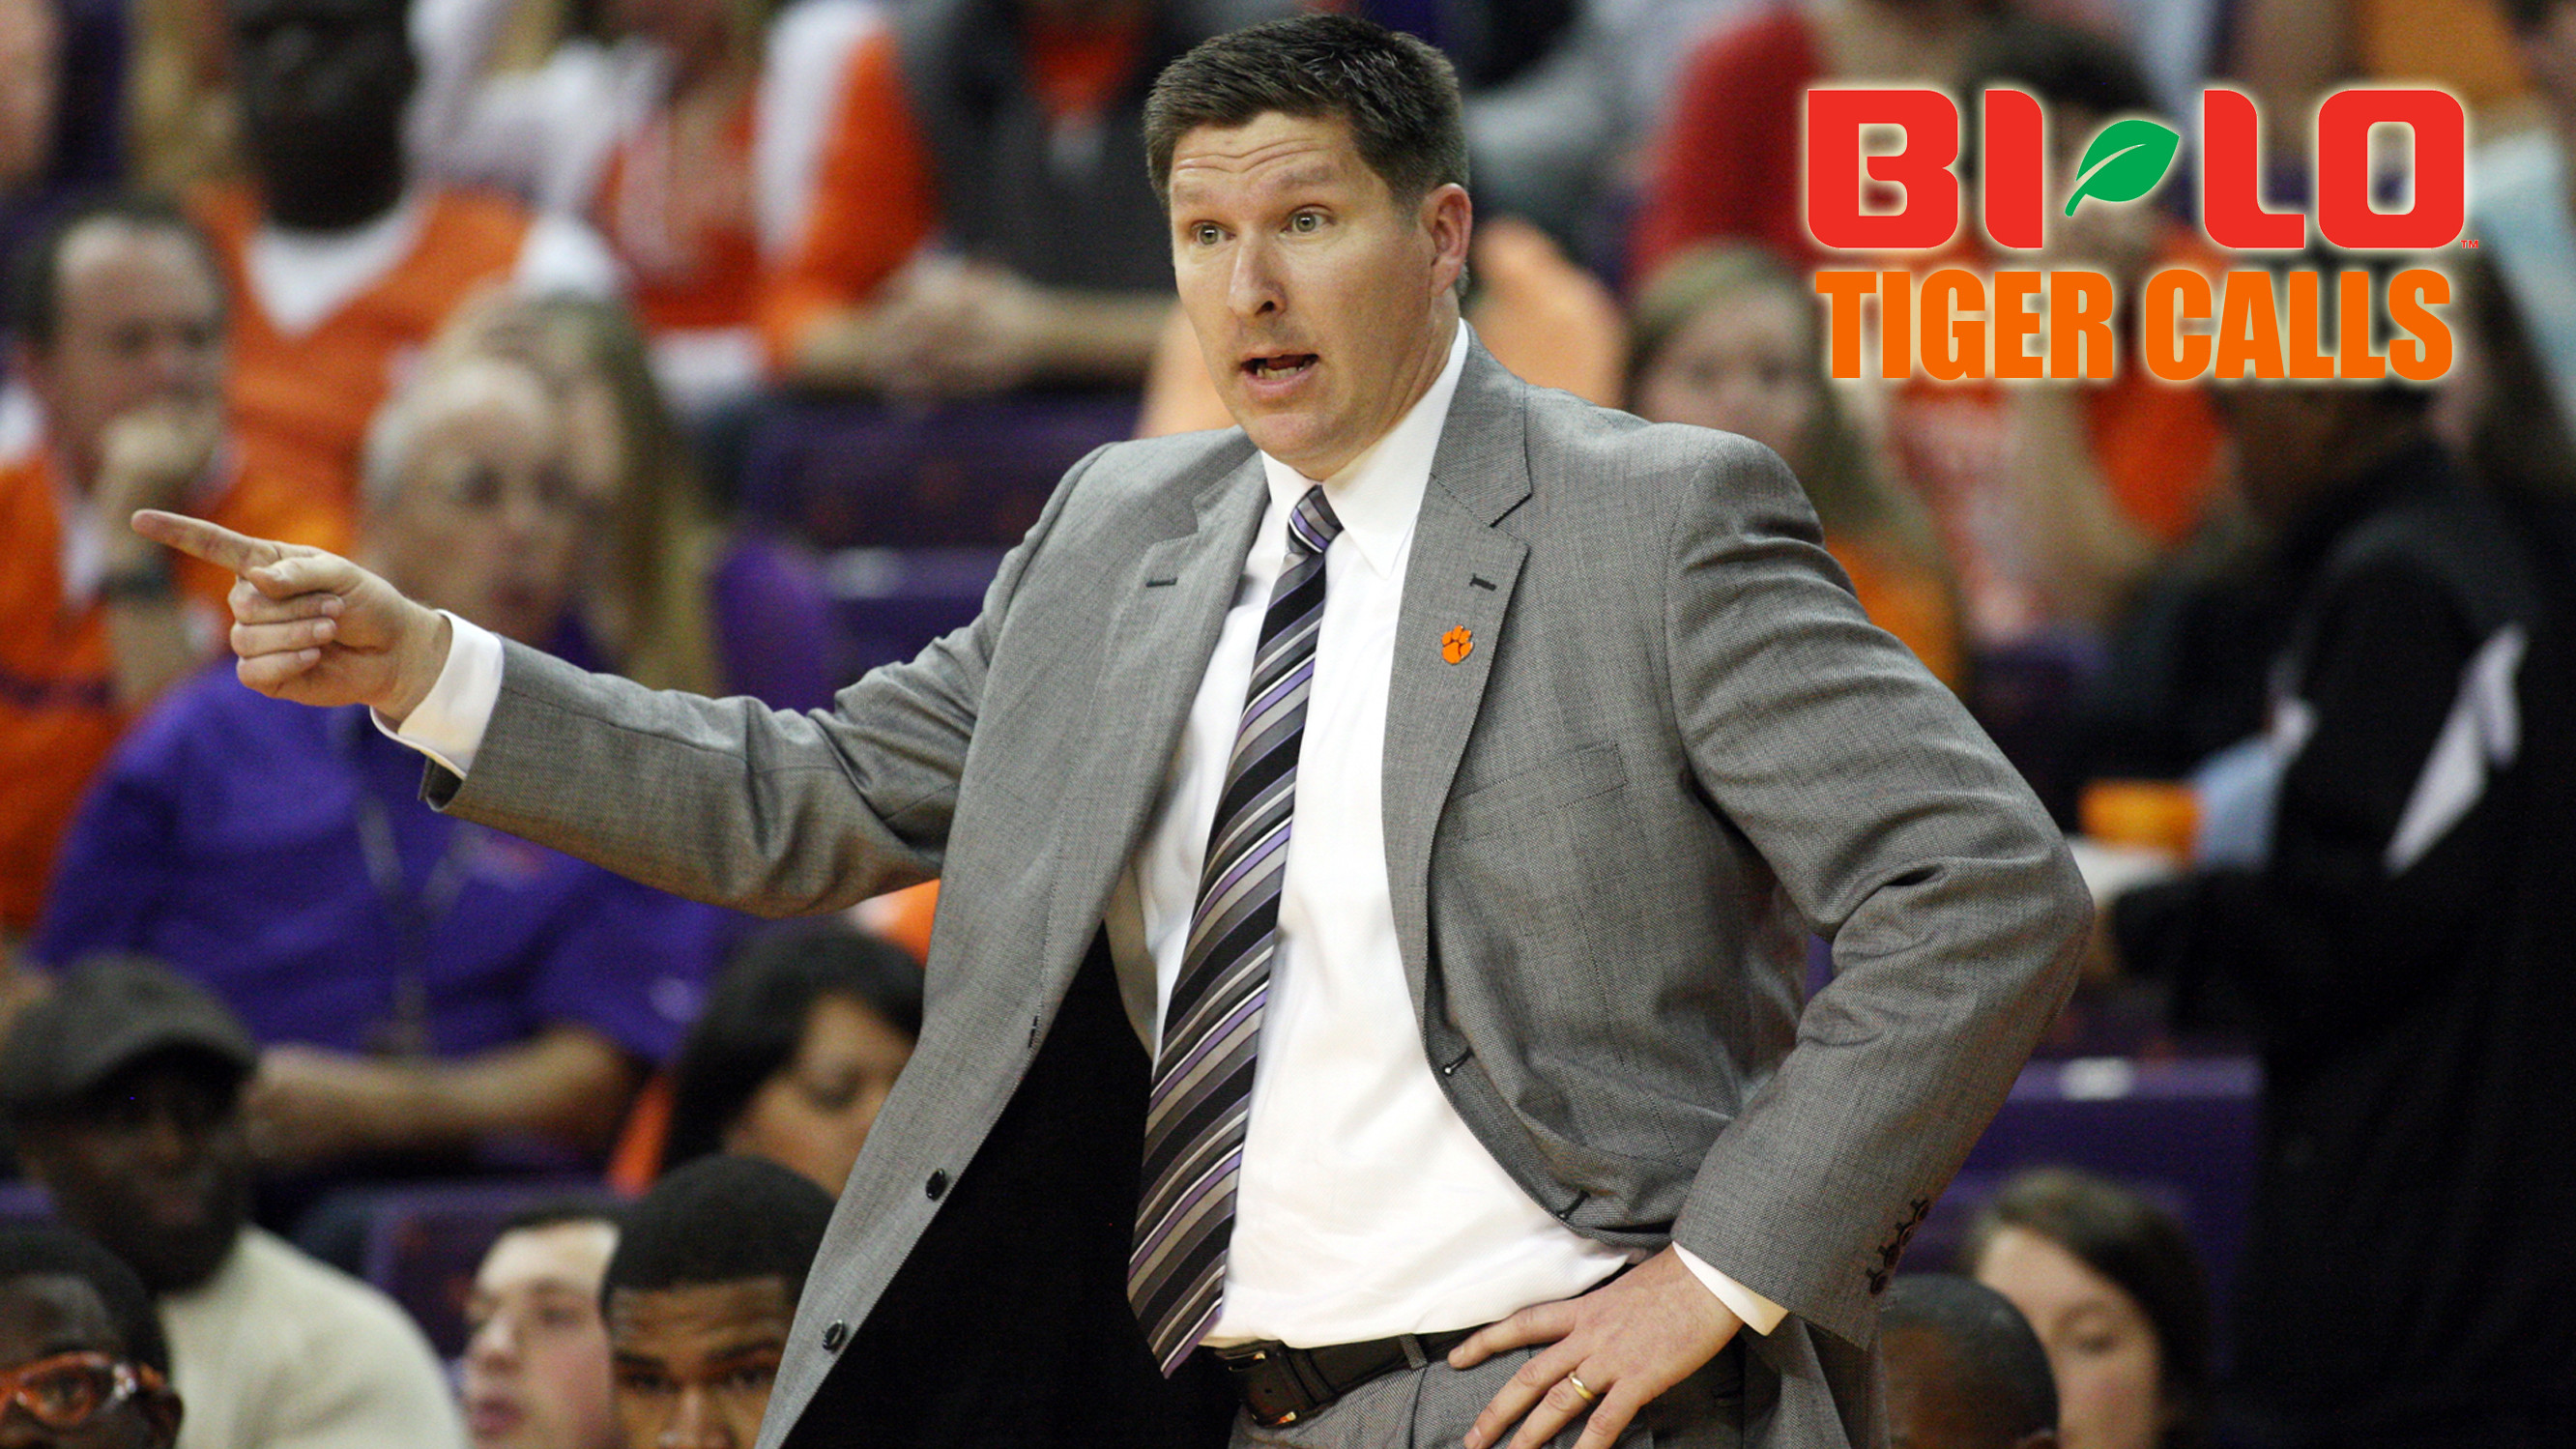 Listen to BI-LO Tiger Calls with Brad Brownell Live on ClemsonTigers.com Monday at 7 PM